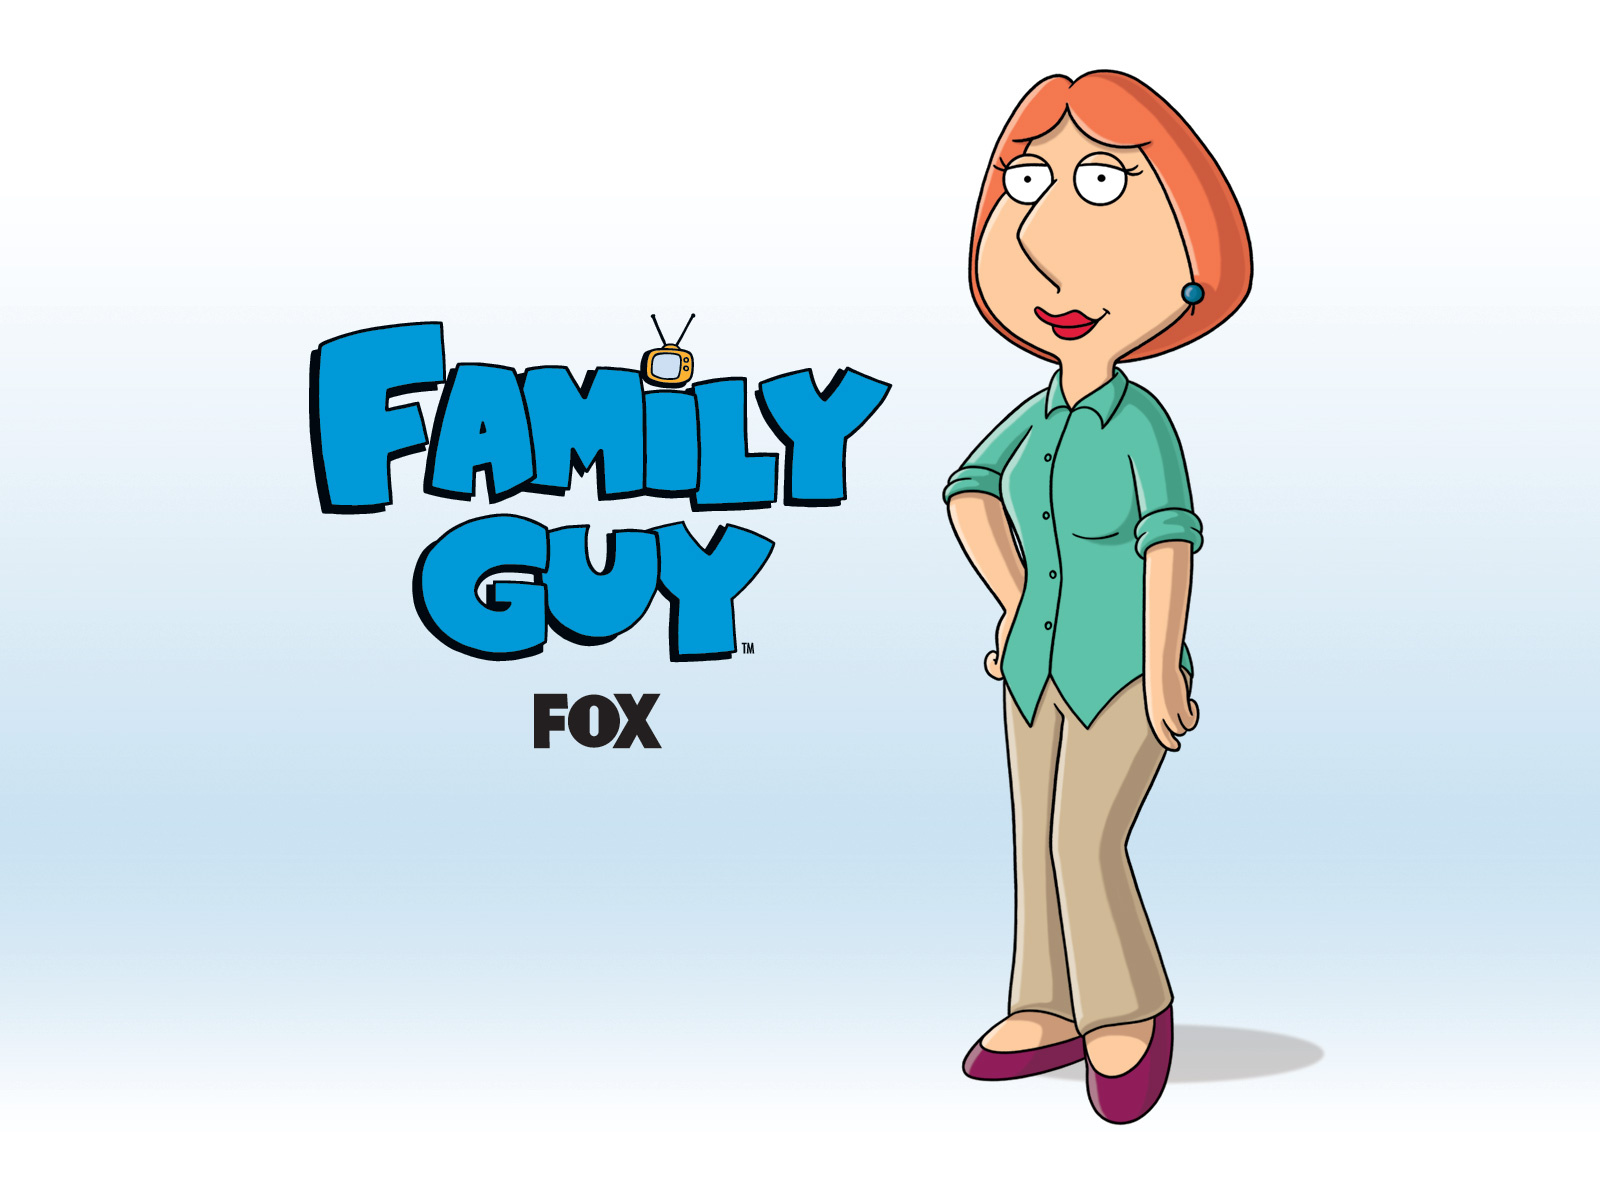 Family Guy Lois Griffin Fanart by RainbowEeveeDE on Newgrounds